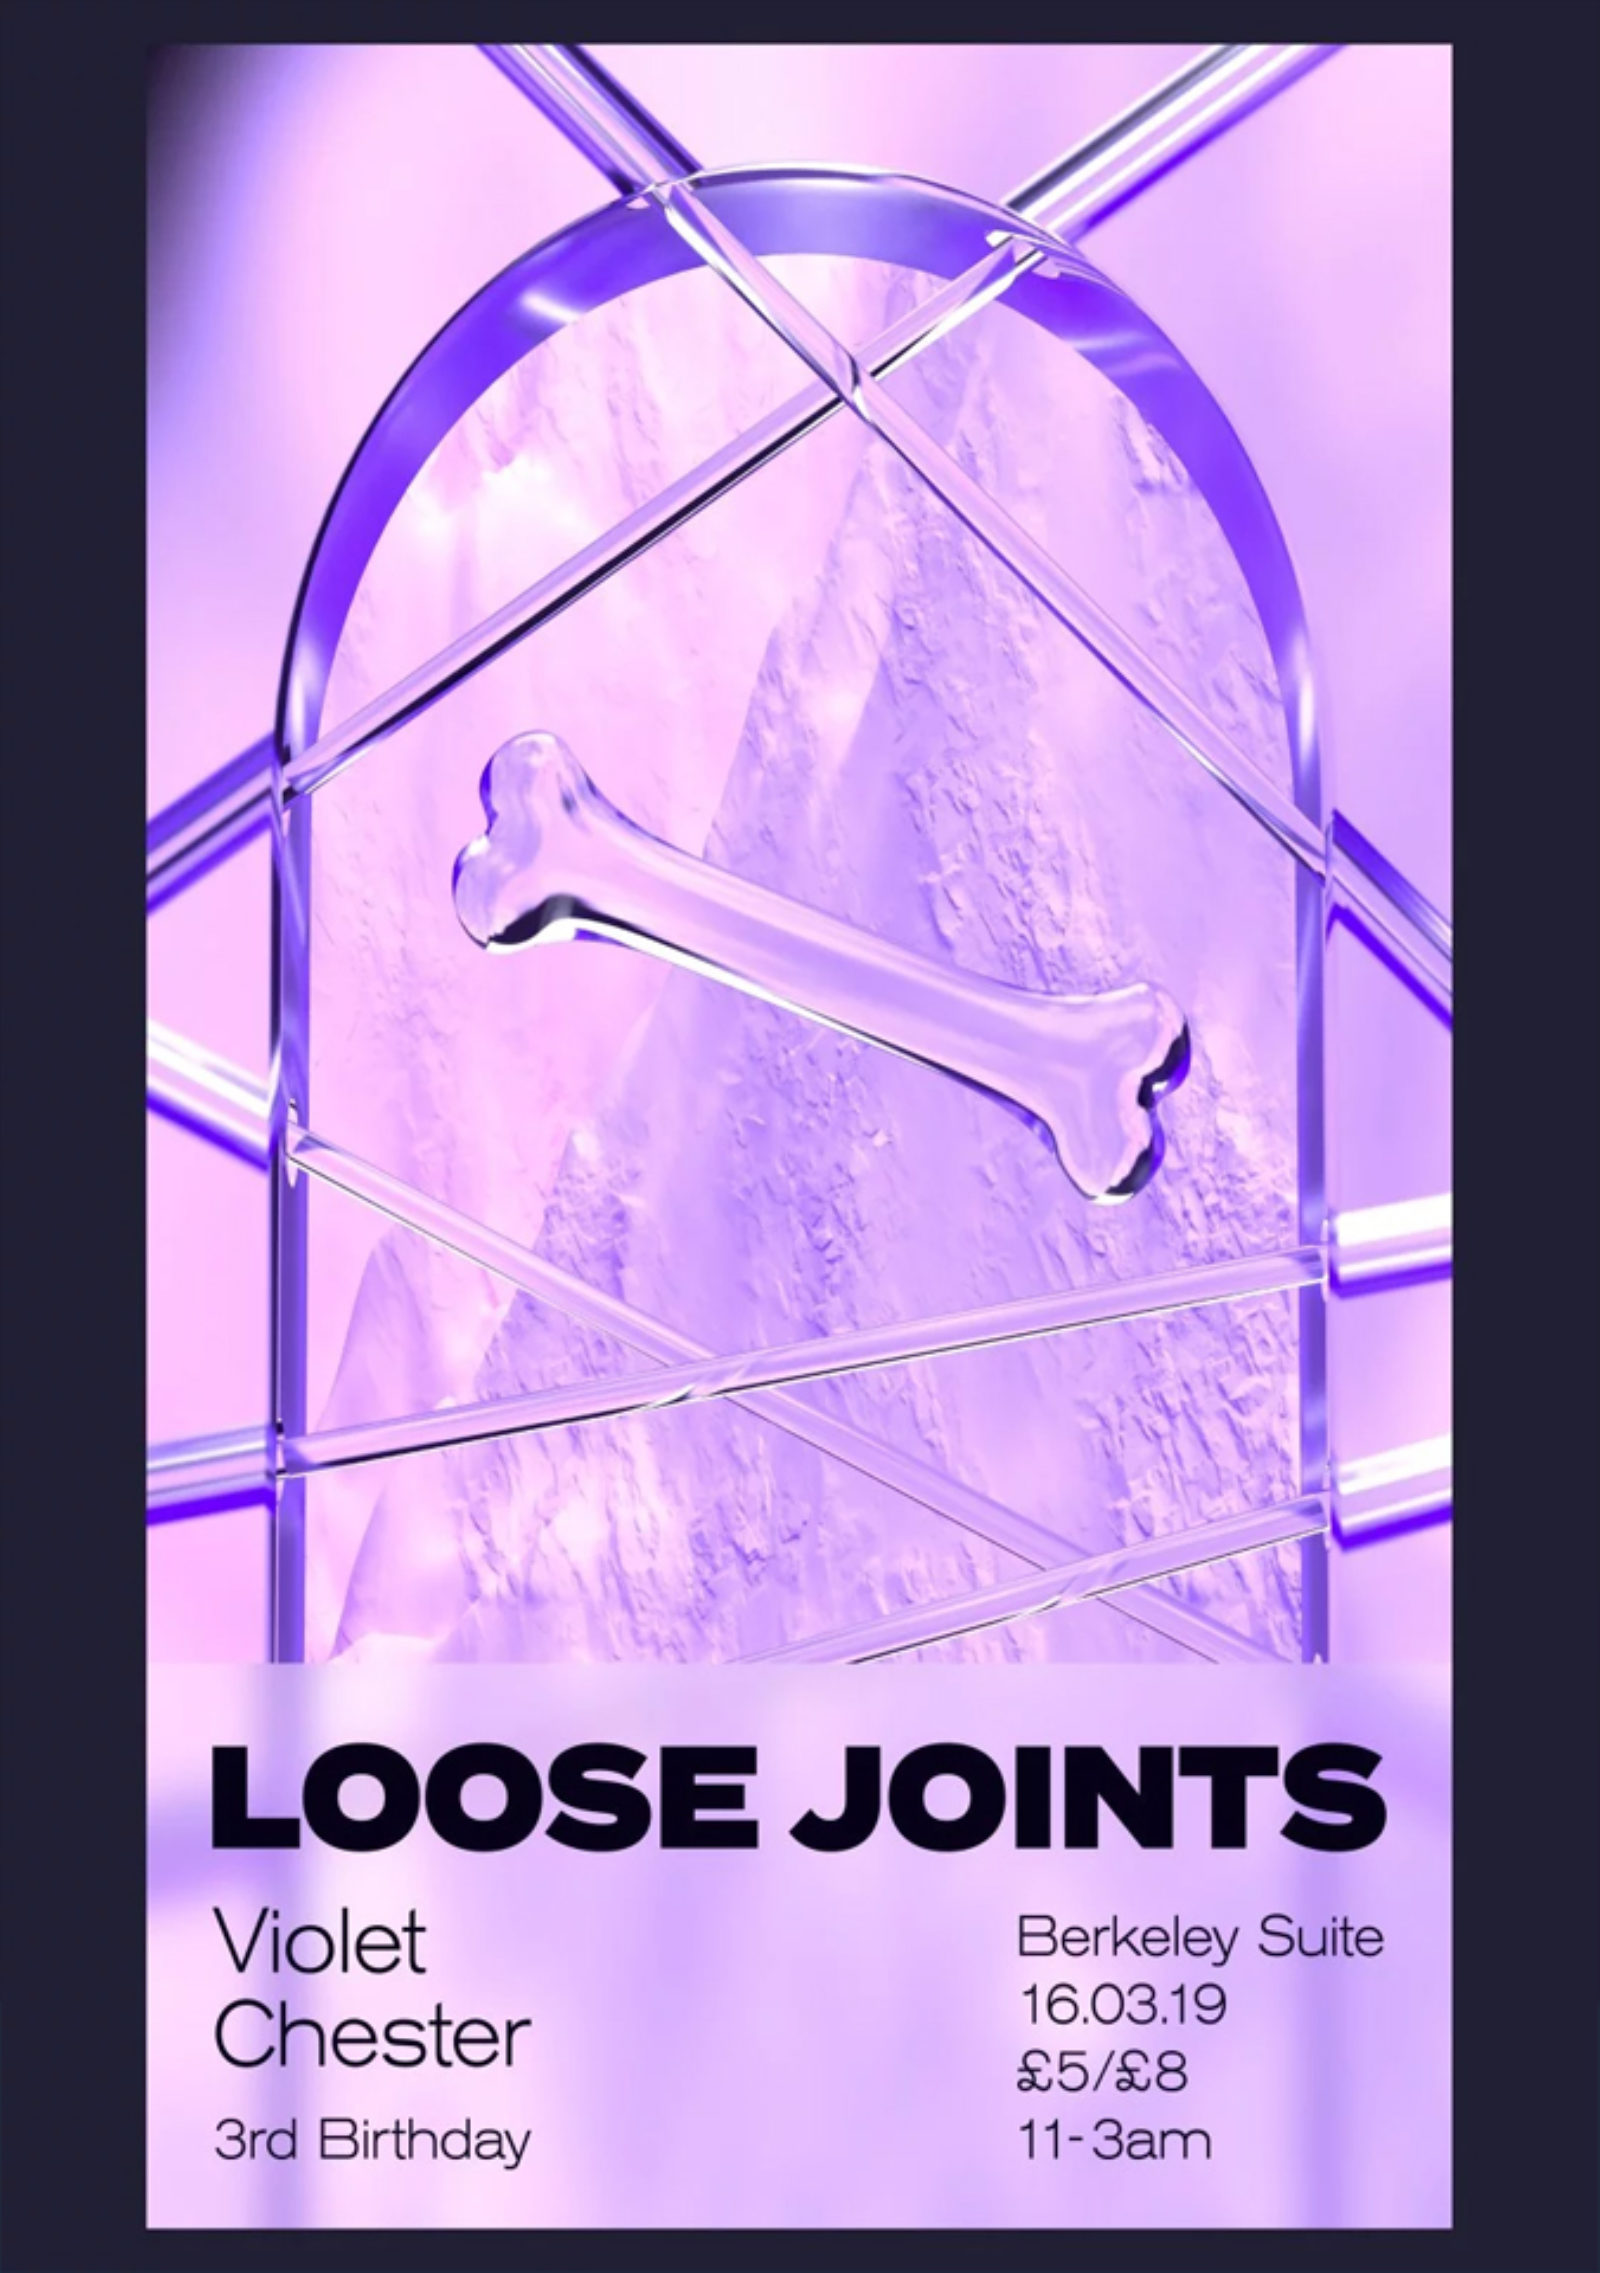 Loose Joints 3rd Birthday with Violet